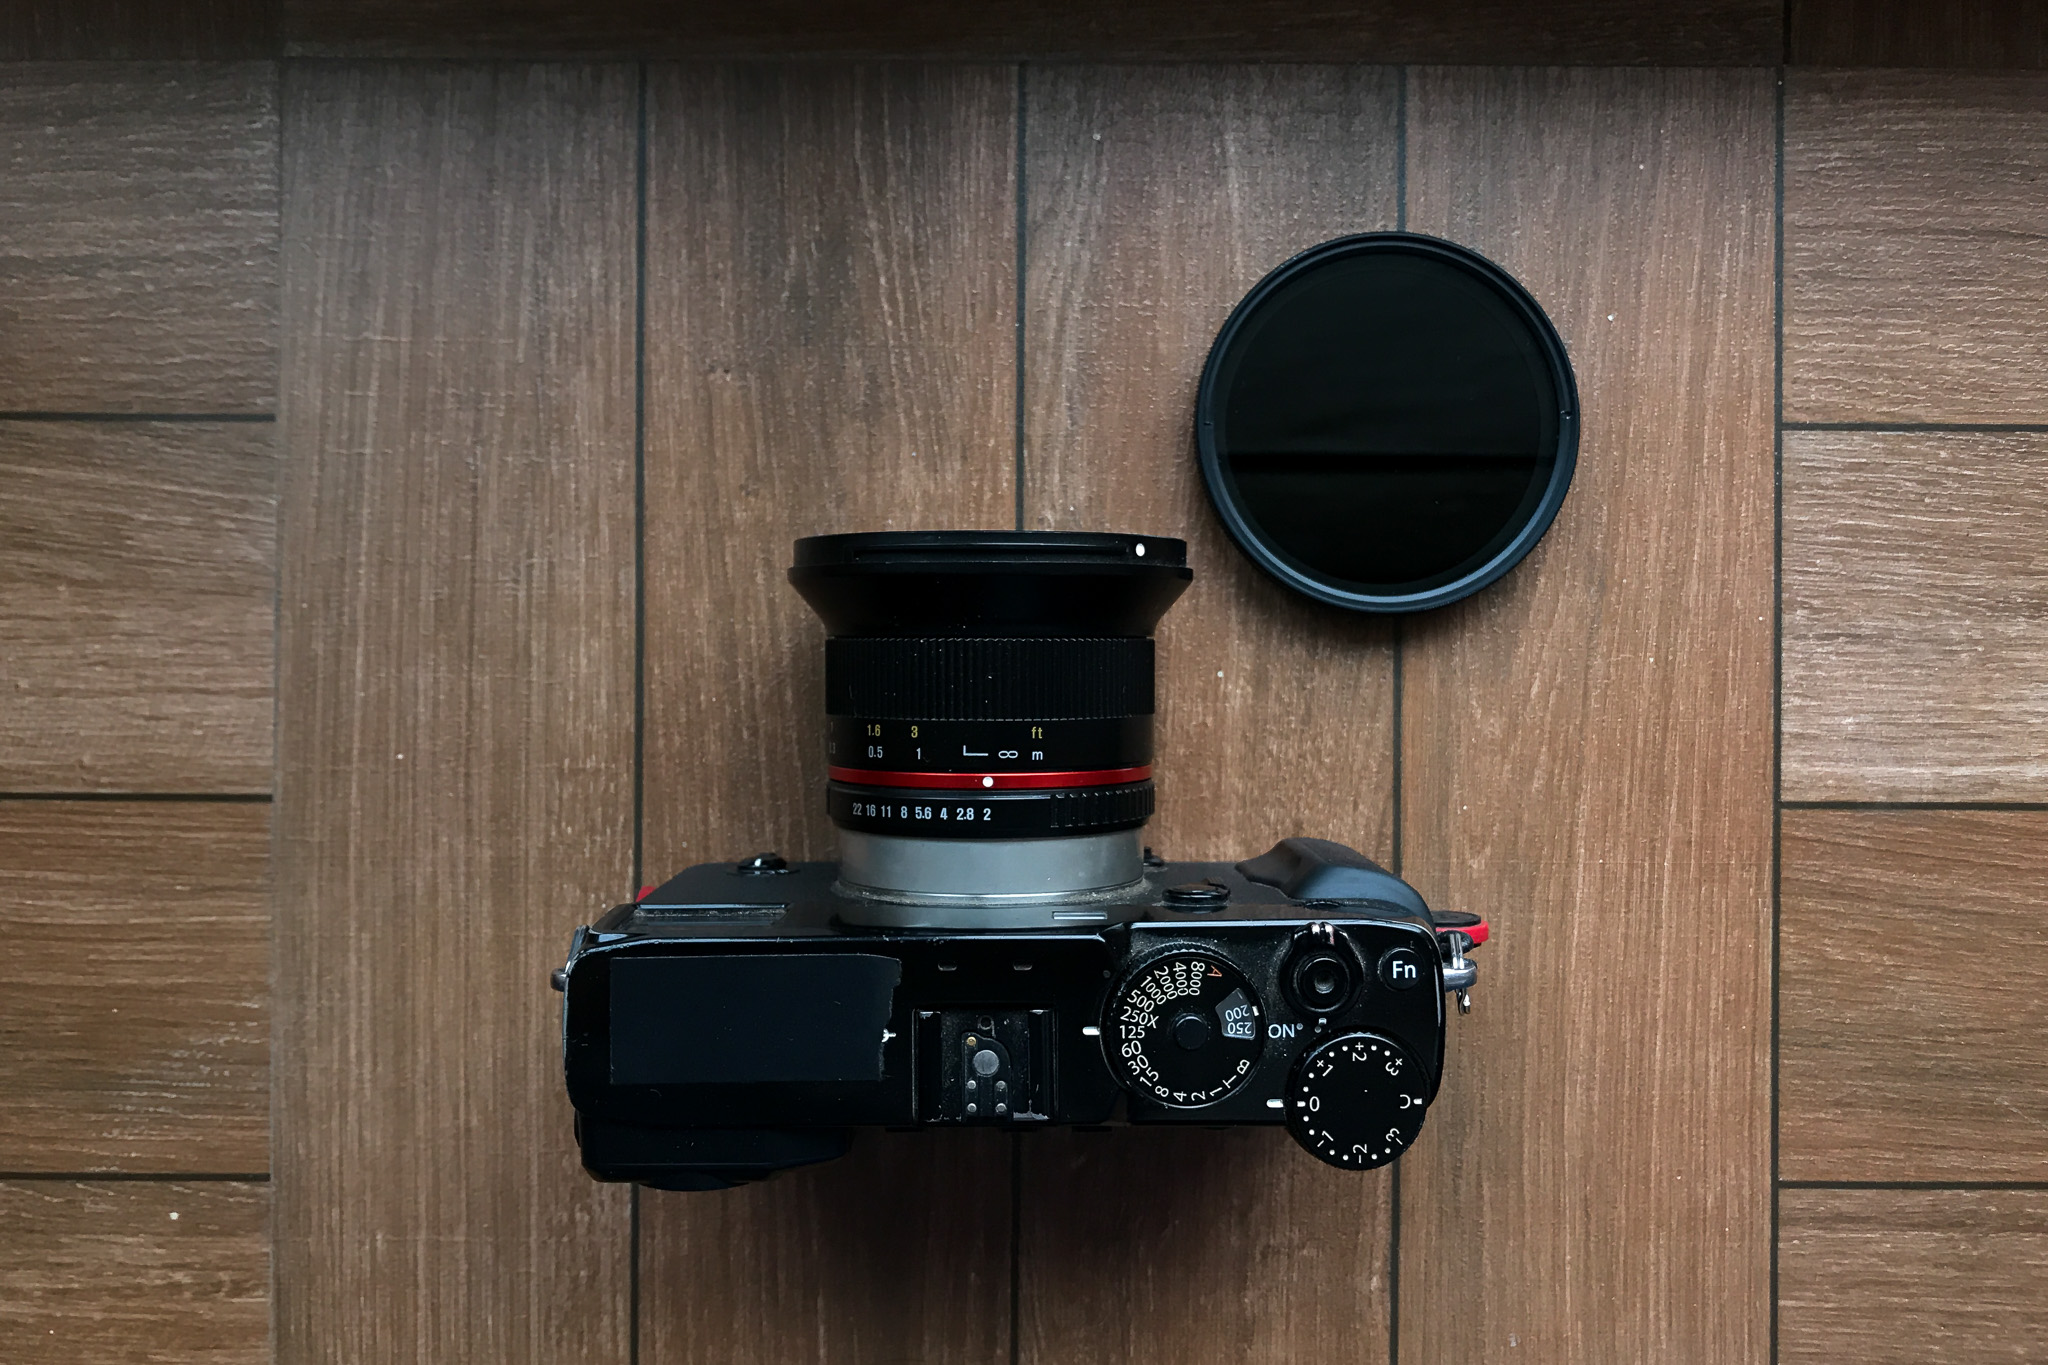 Fujifilm X-Pro 2, Rokinon 12mm F2 and a Variable ND filter